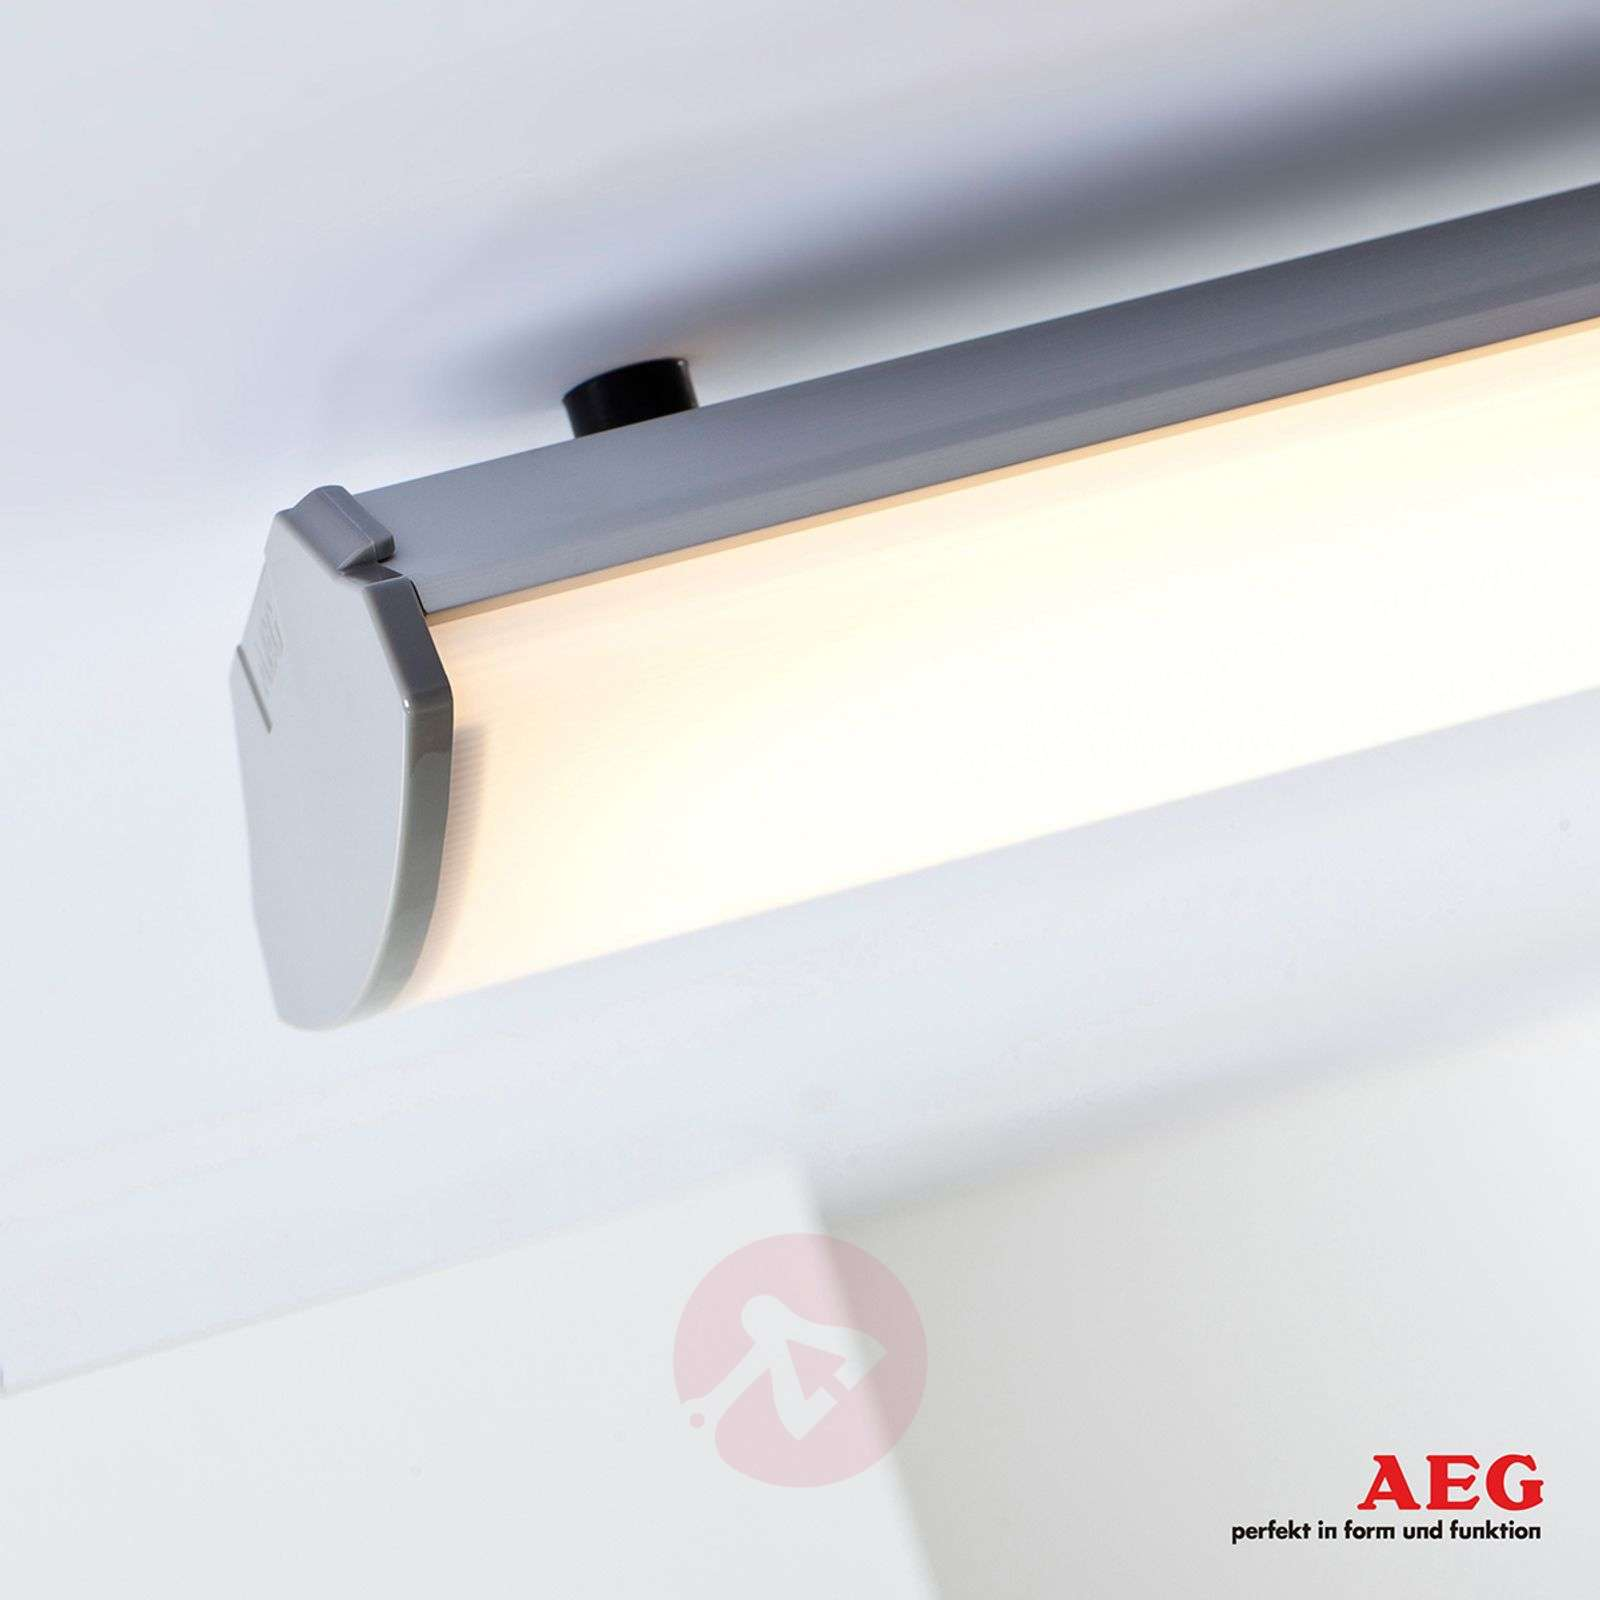 LED Office plafonnier LED d'AEG, 25 W-3057010-06